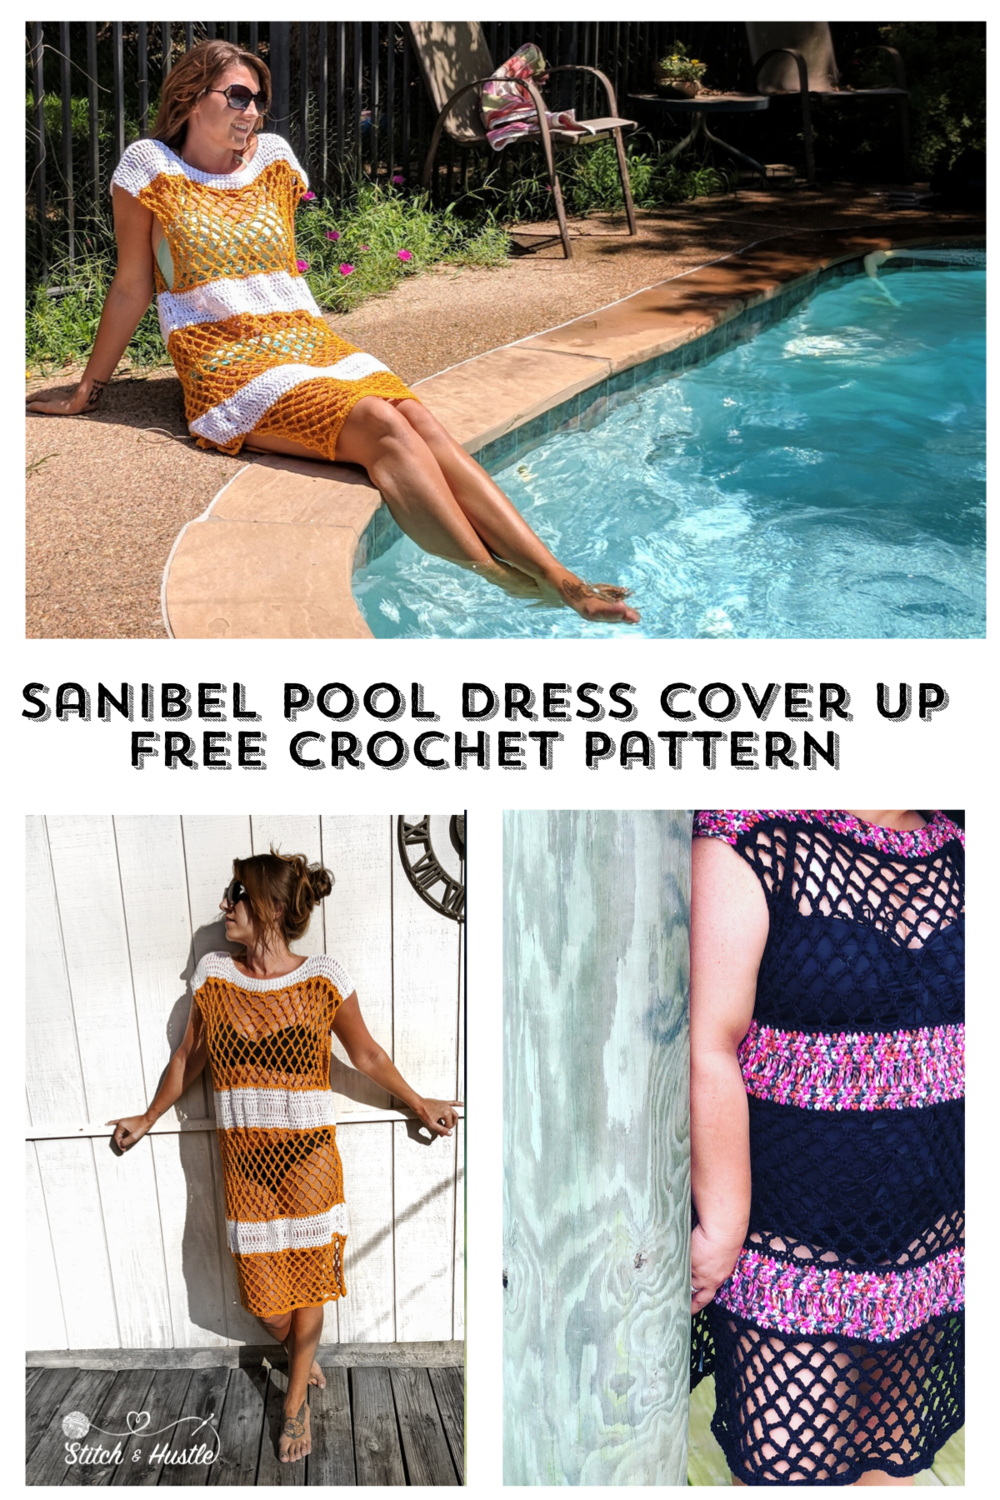 Sanibel_Pool-Dress_free-crochet-pattern82.jpeg